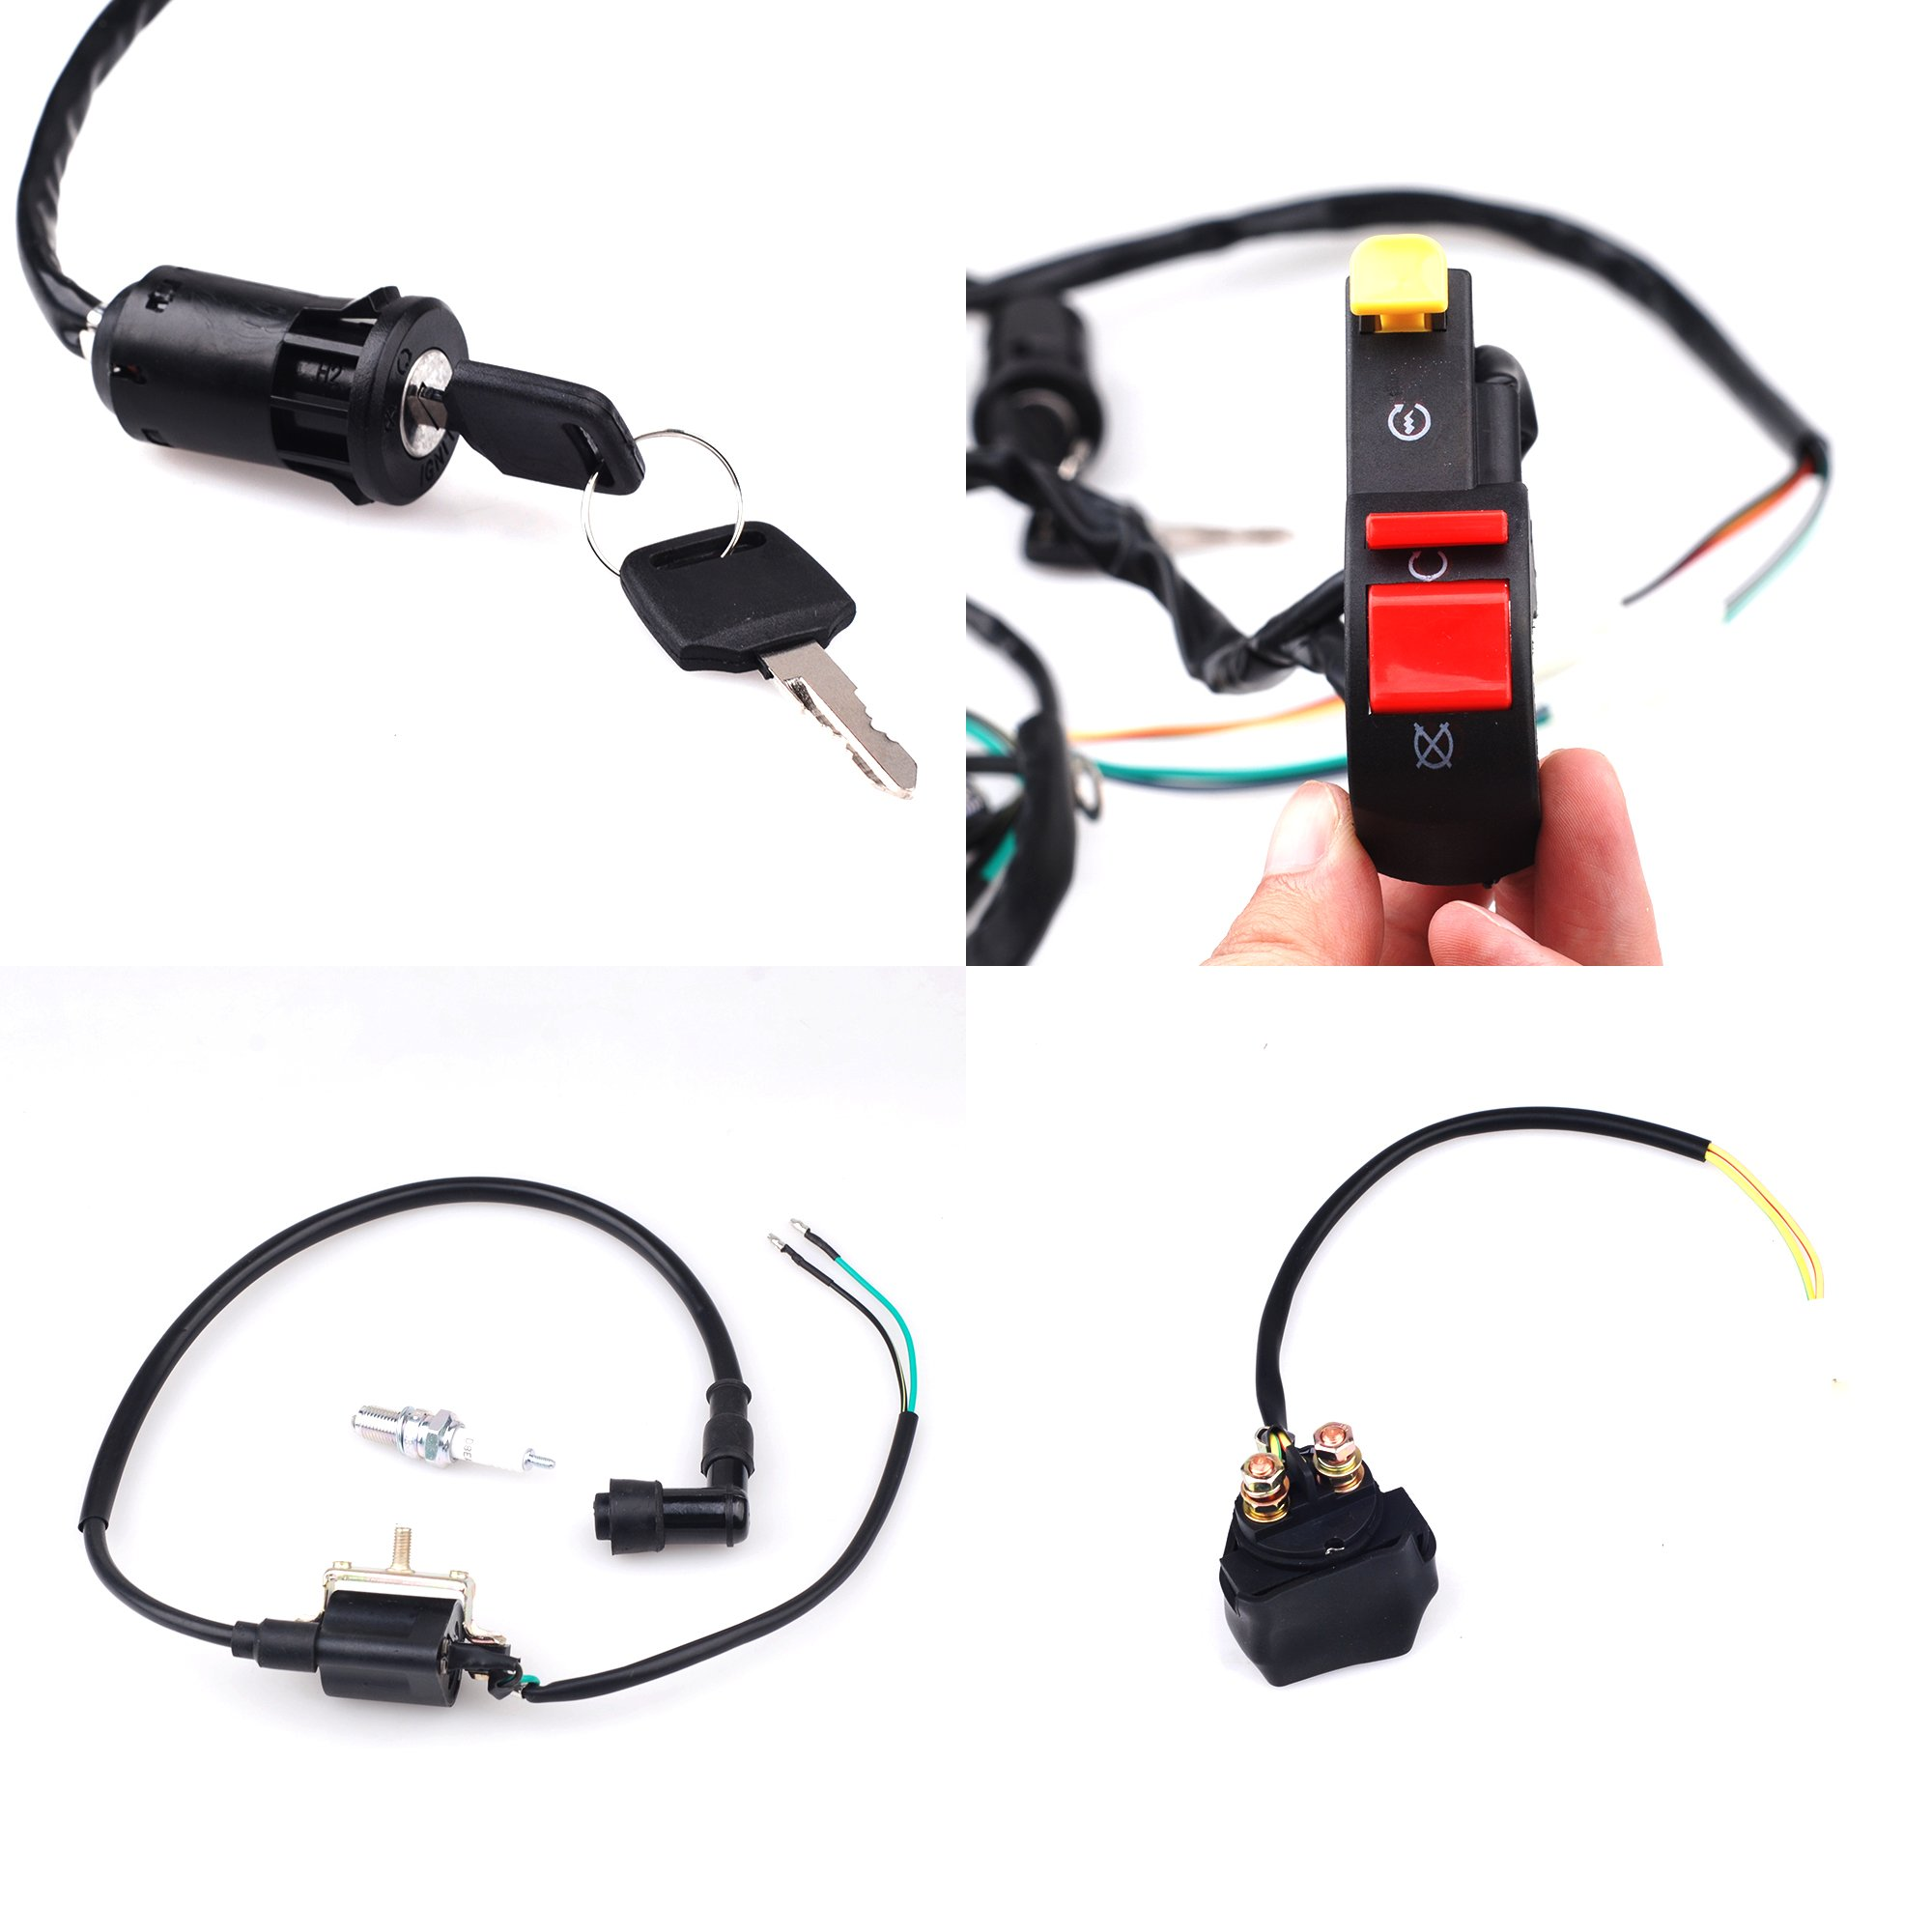 Cisno Complete Electrics Cdi Coil Wiring Loom Harness Kick For 50cc 125cc Atv 110cc Dirt Bike Cm102ok Harnesses Automotive Tibs